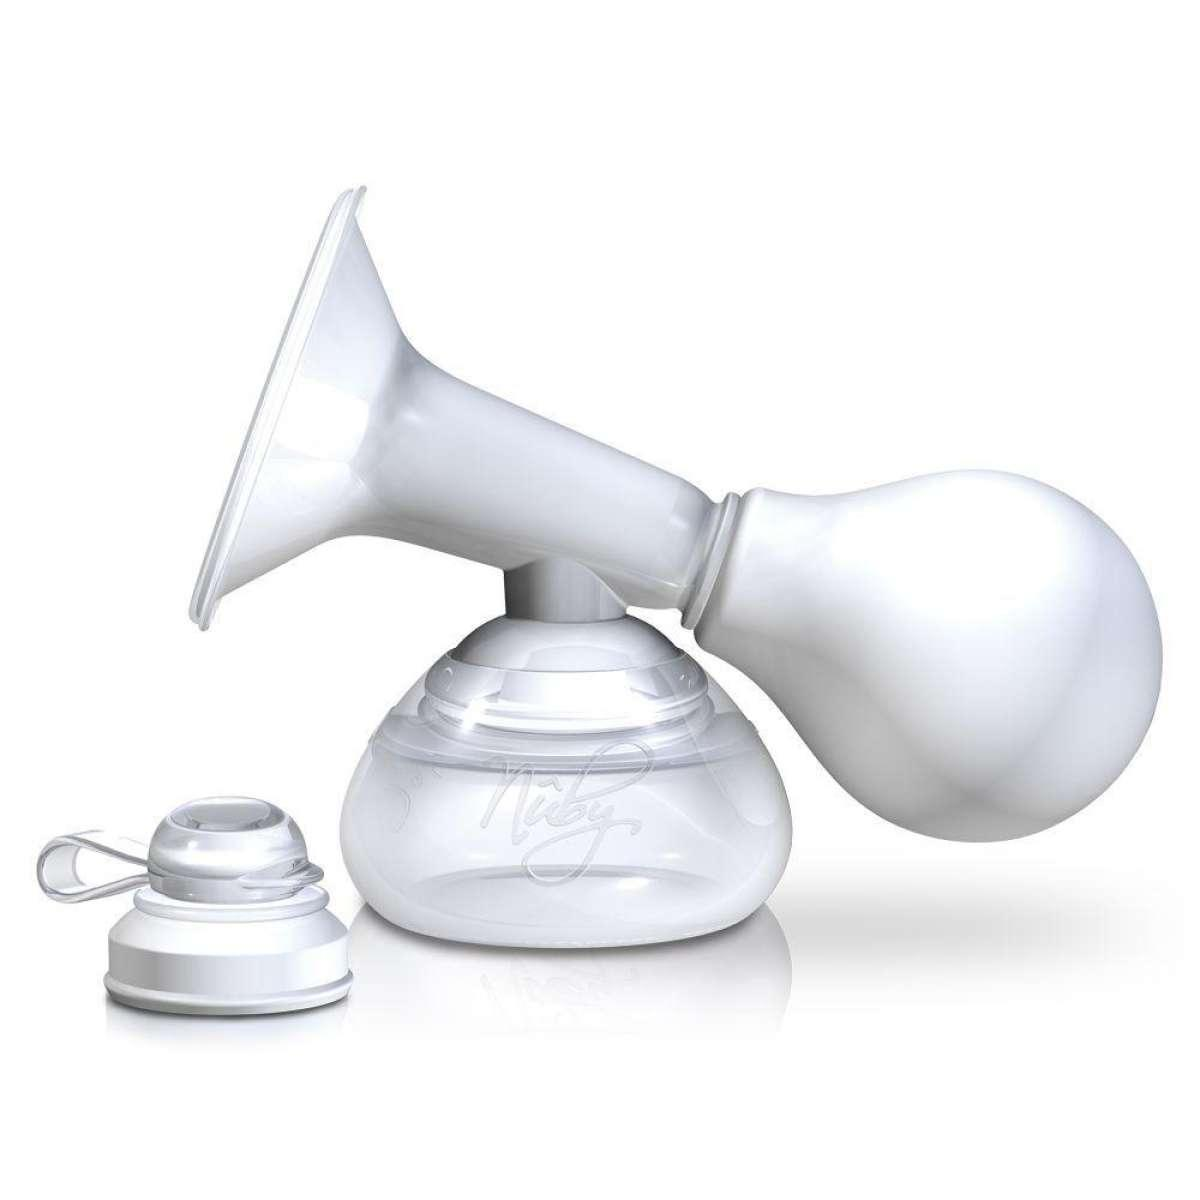 Breast Pumps Buy At Best Price In Pakistan Farlin Softfit Shield Natural Touch Express Pump